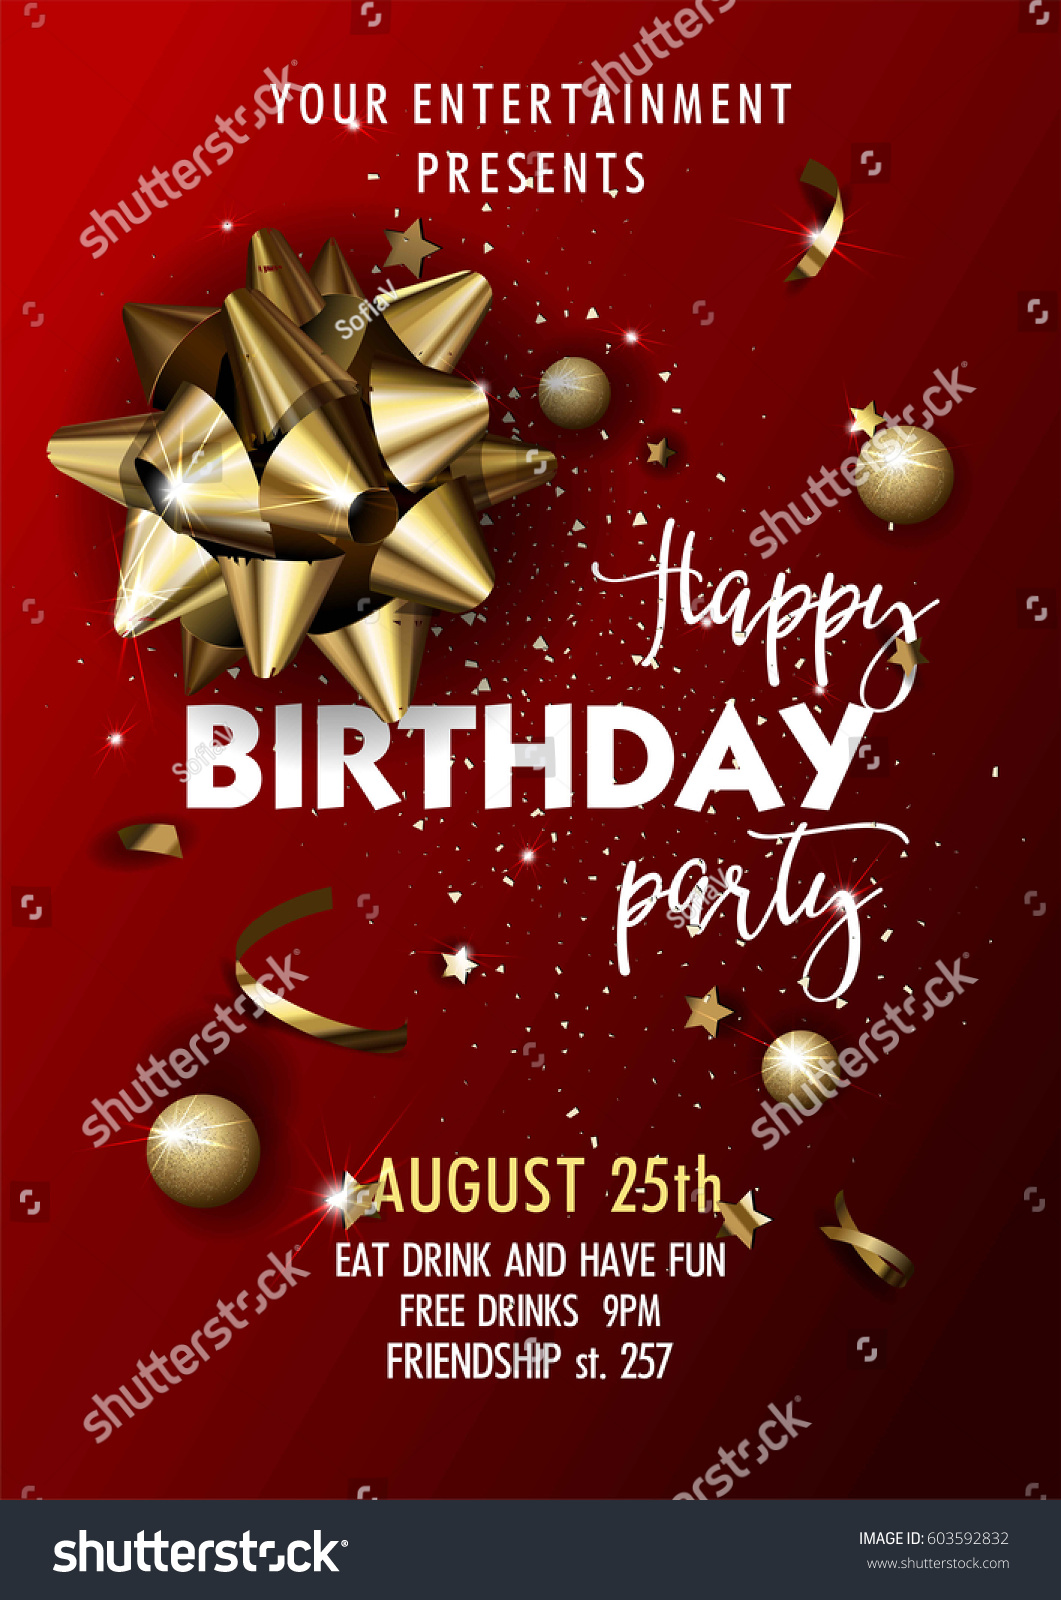 Happy Birthday Party Invitation Vector Poster Stock Vector (Royalty ...